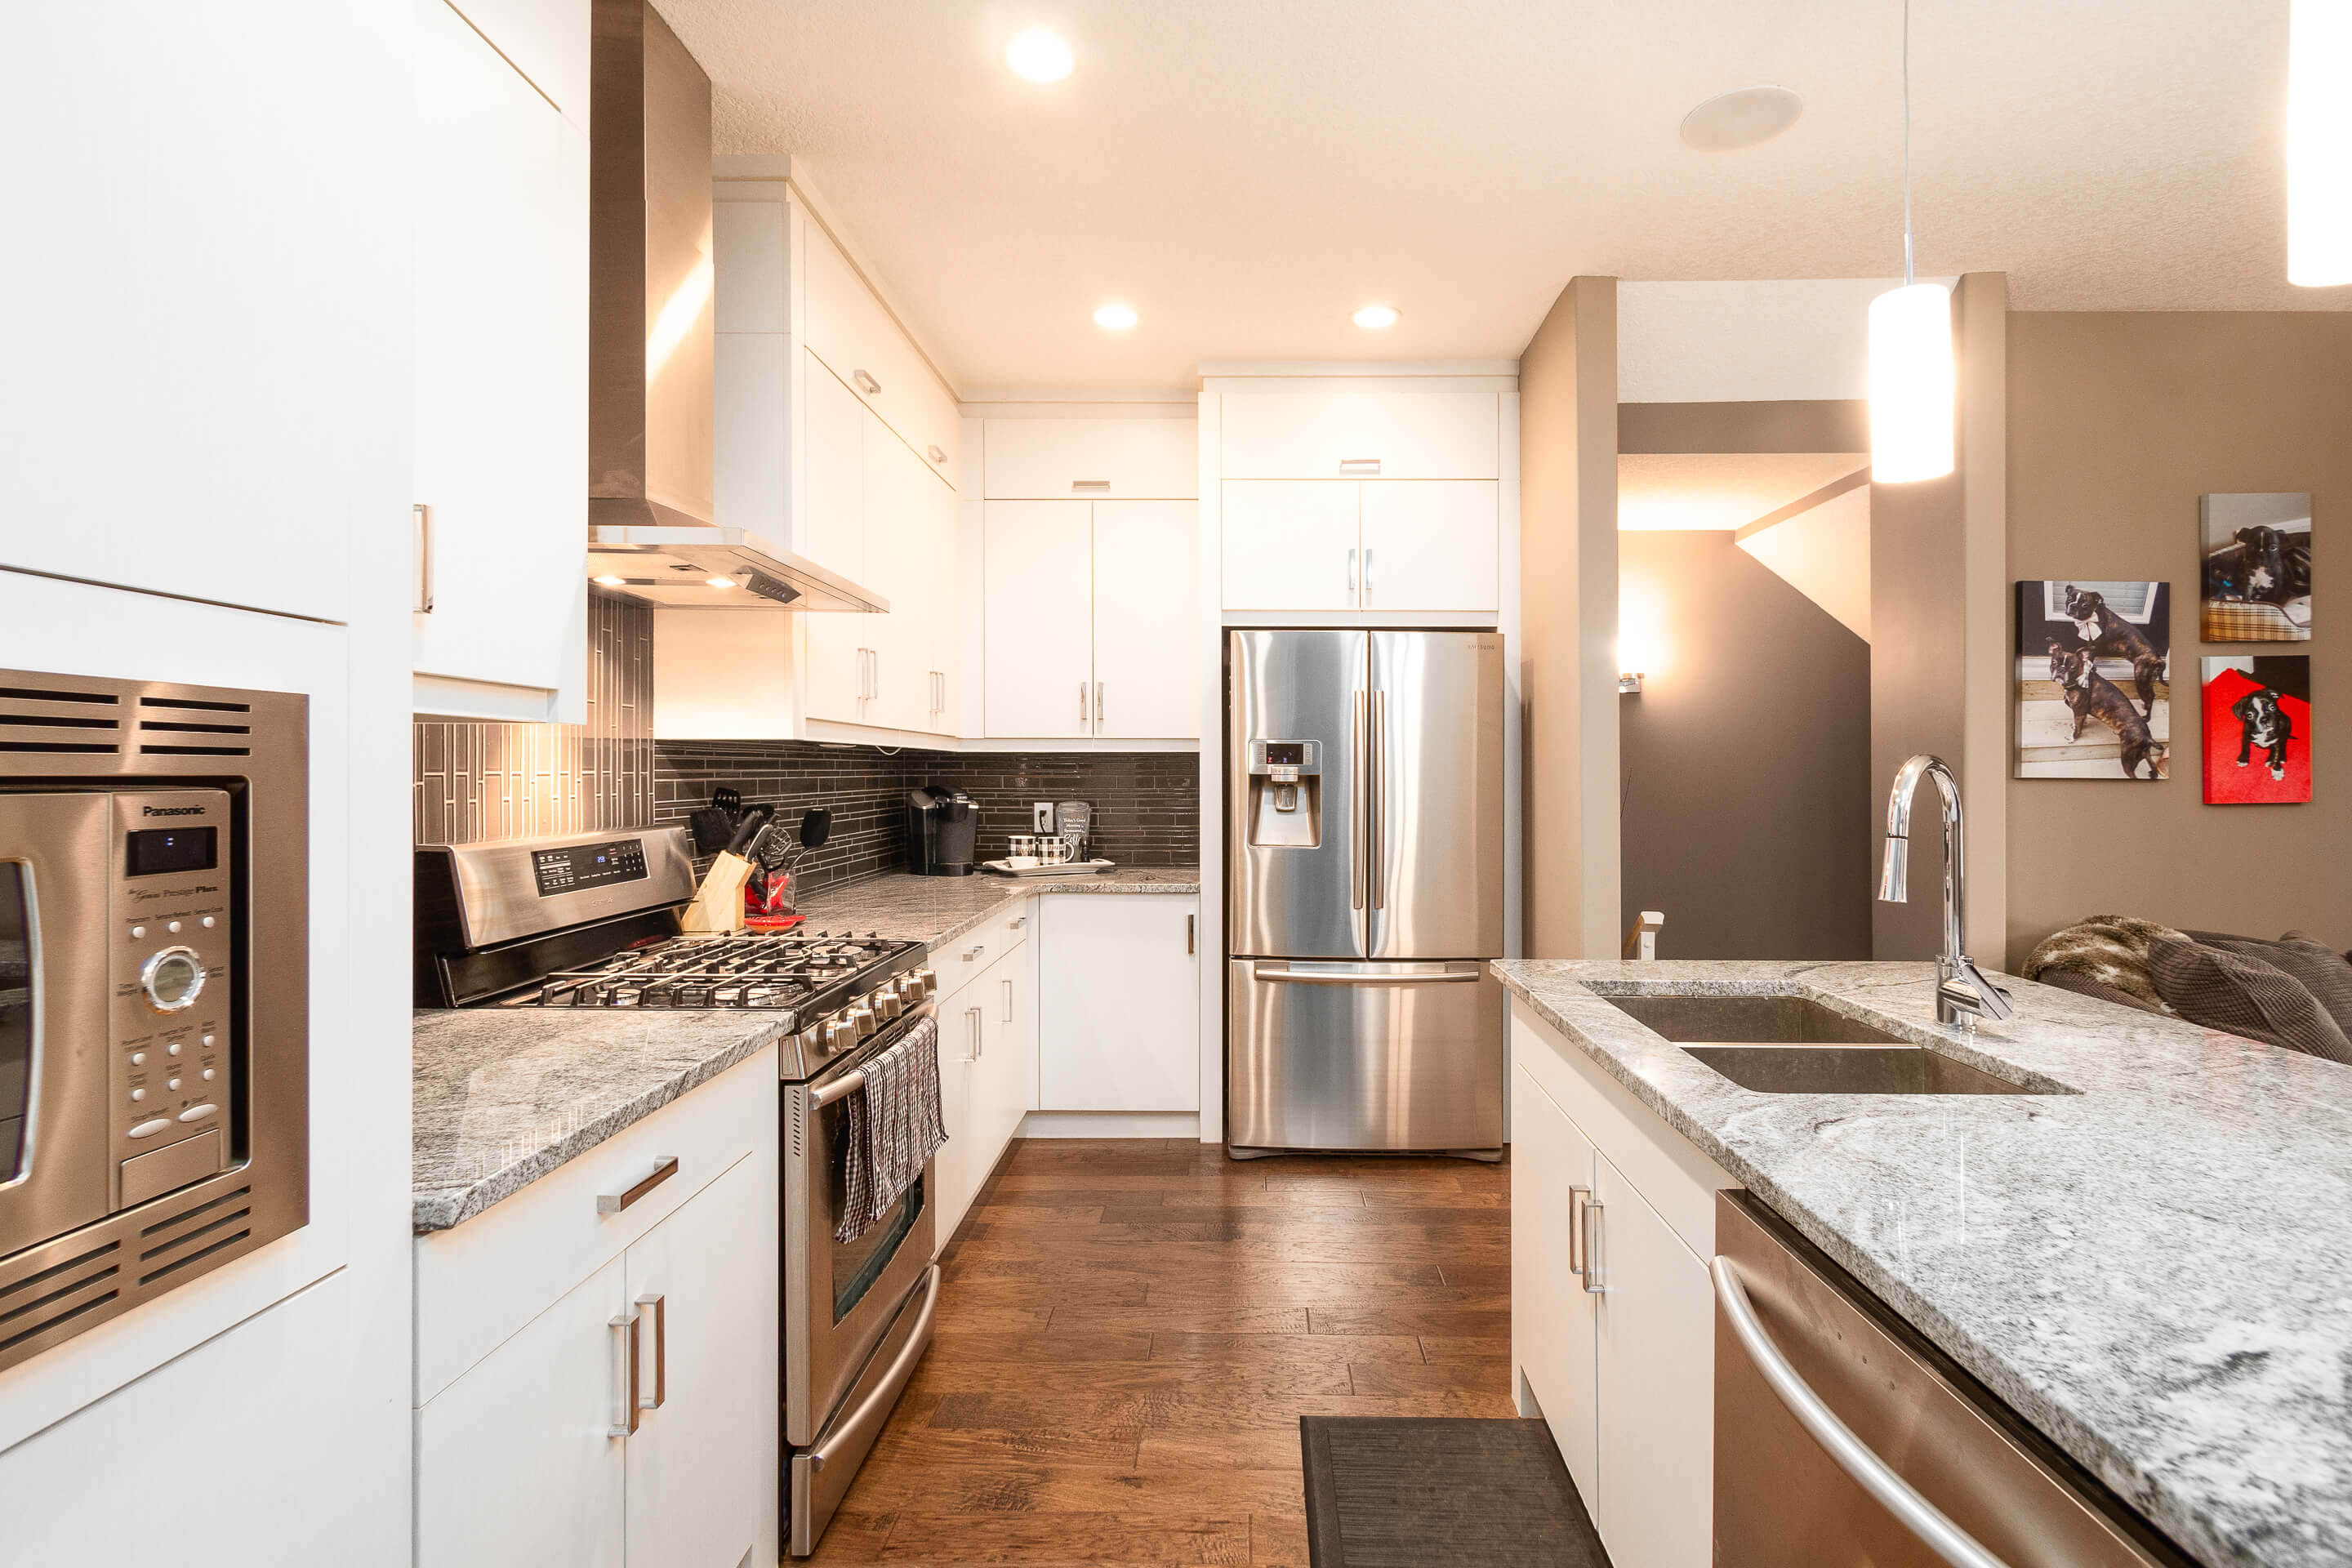 Hello Gorgeous - 2-4726 17 Ave NW - Tara Molina Real Estate (7 of 55)